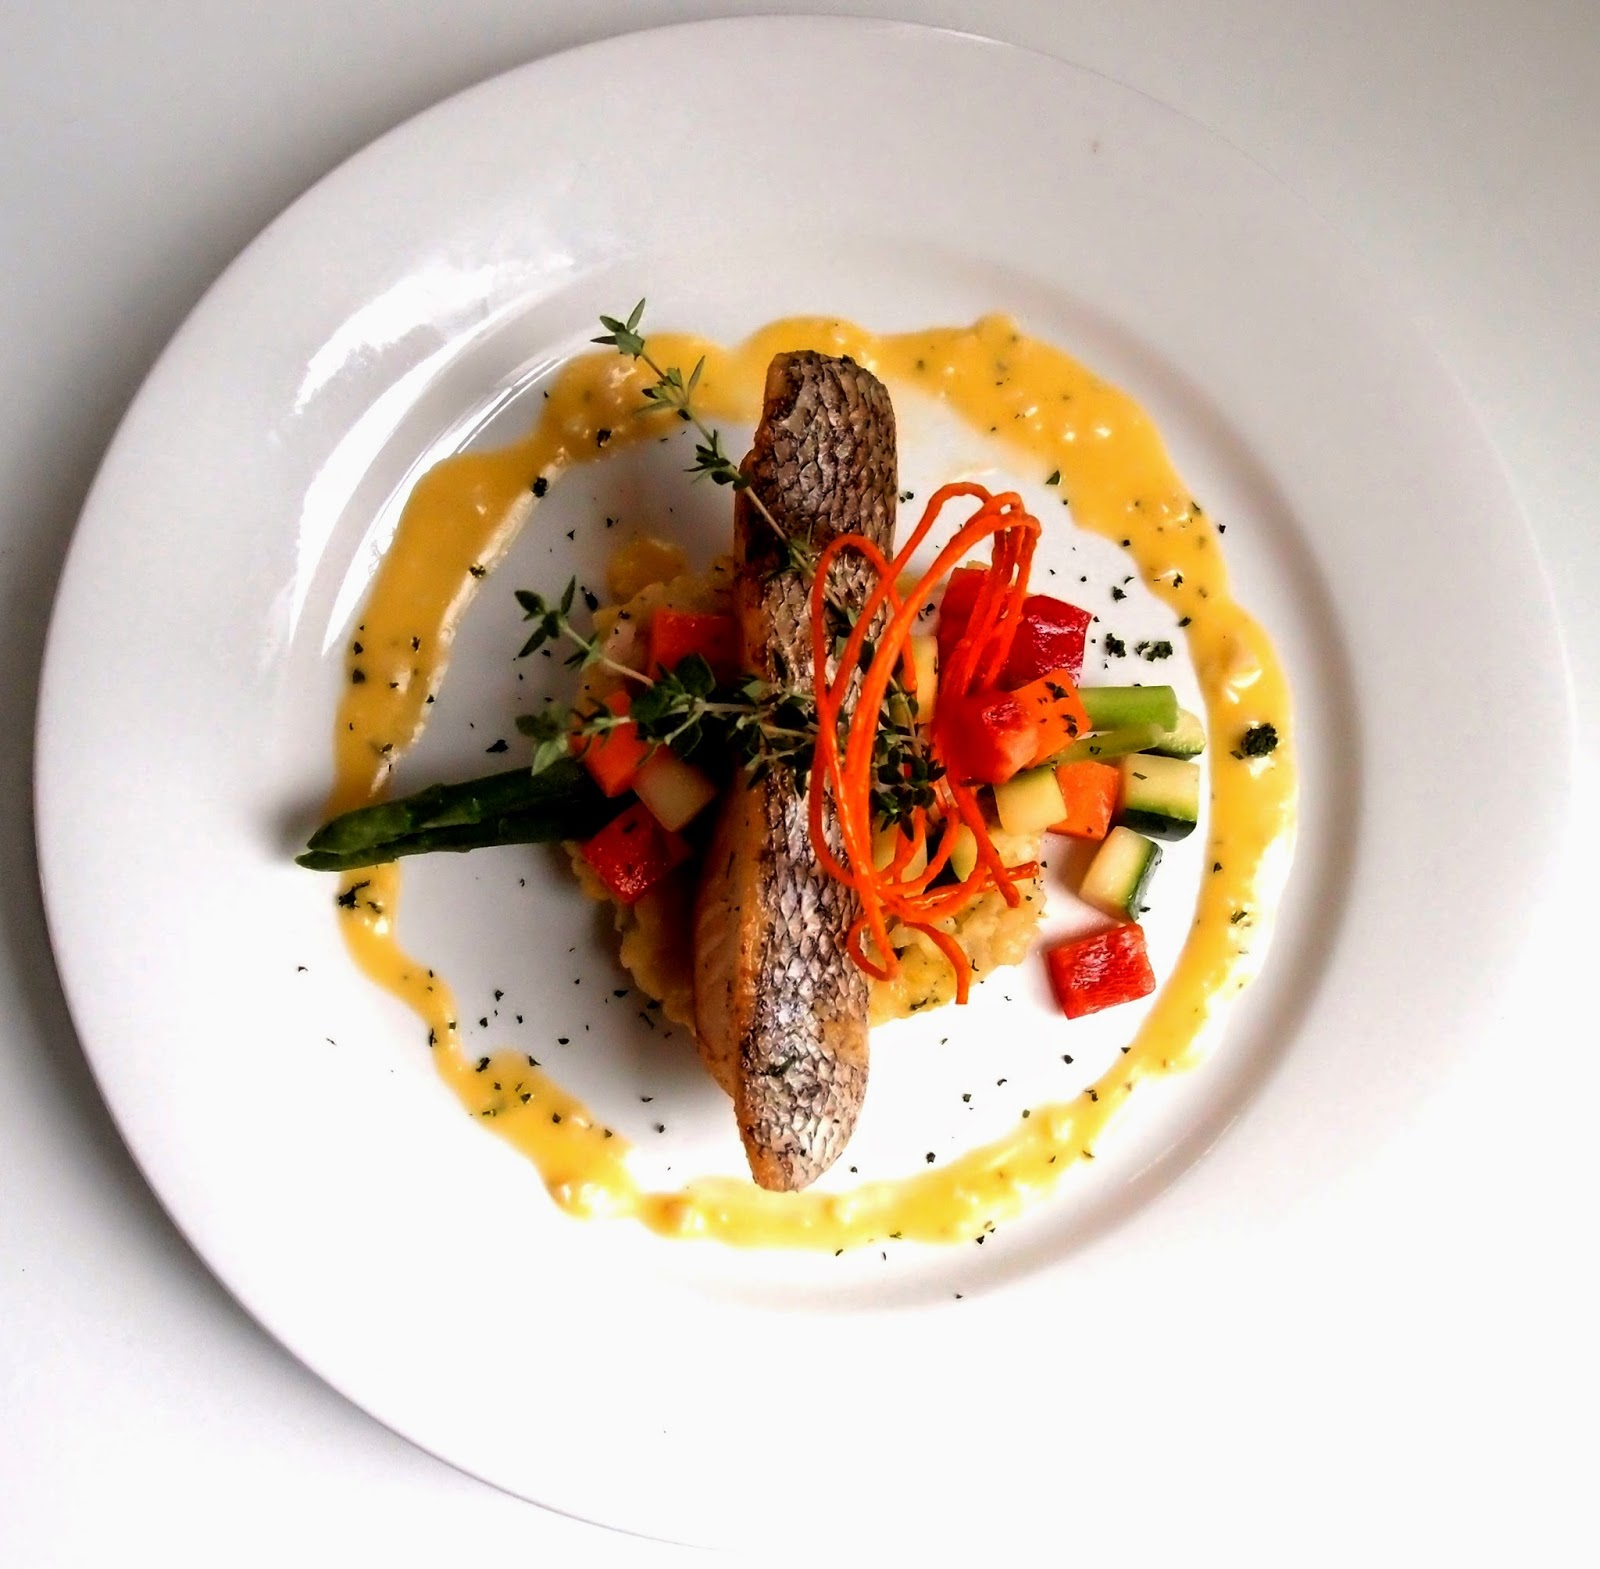 Follow me to eat la malaysian food blog premiere hotel for Restaurants that serve fish near me